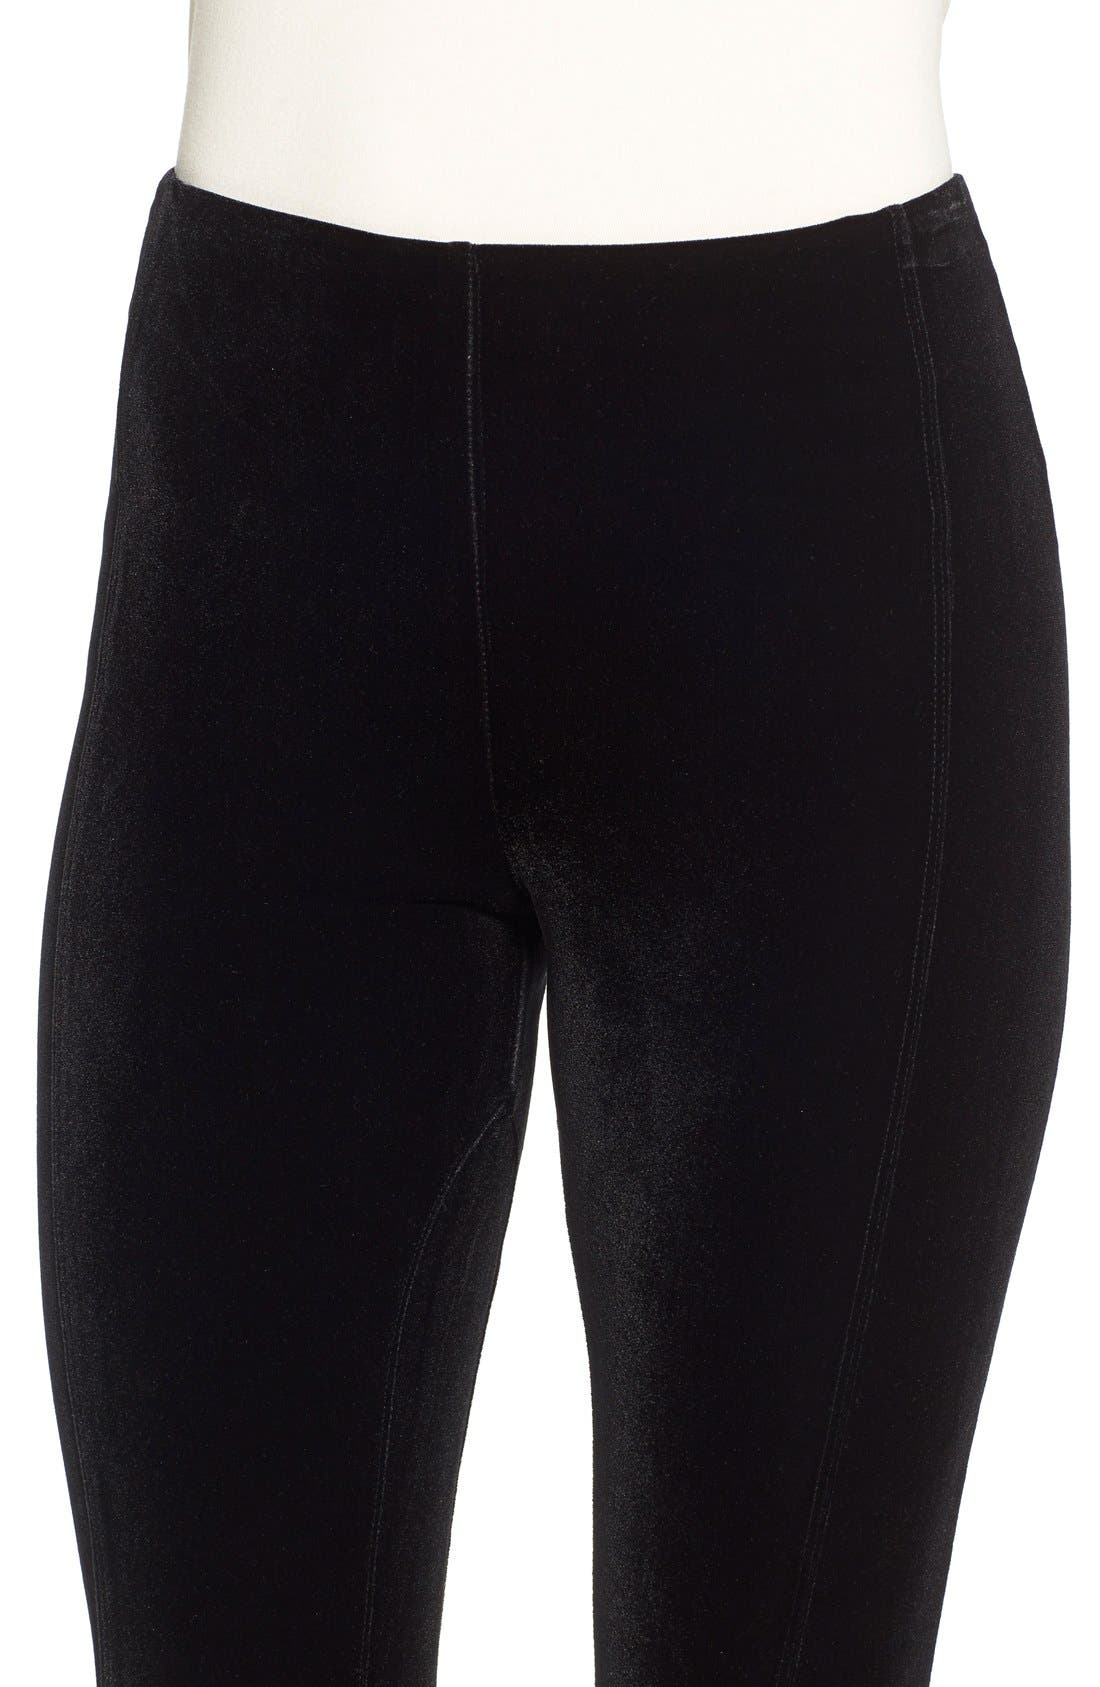 Mara Velvet Leggings,                             Alternate thumbnail 4, color,                             BLACK